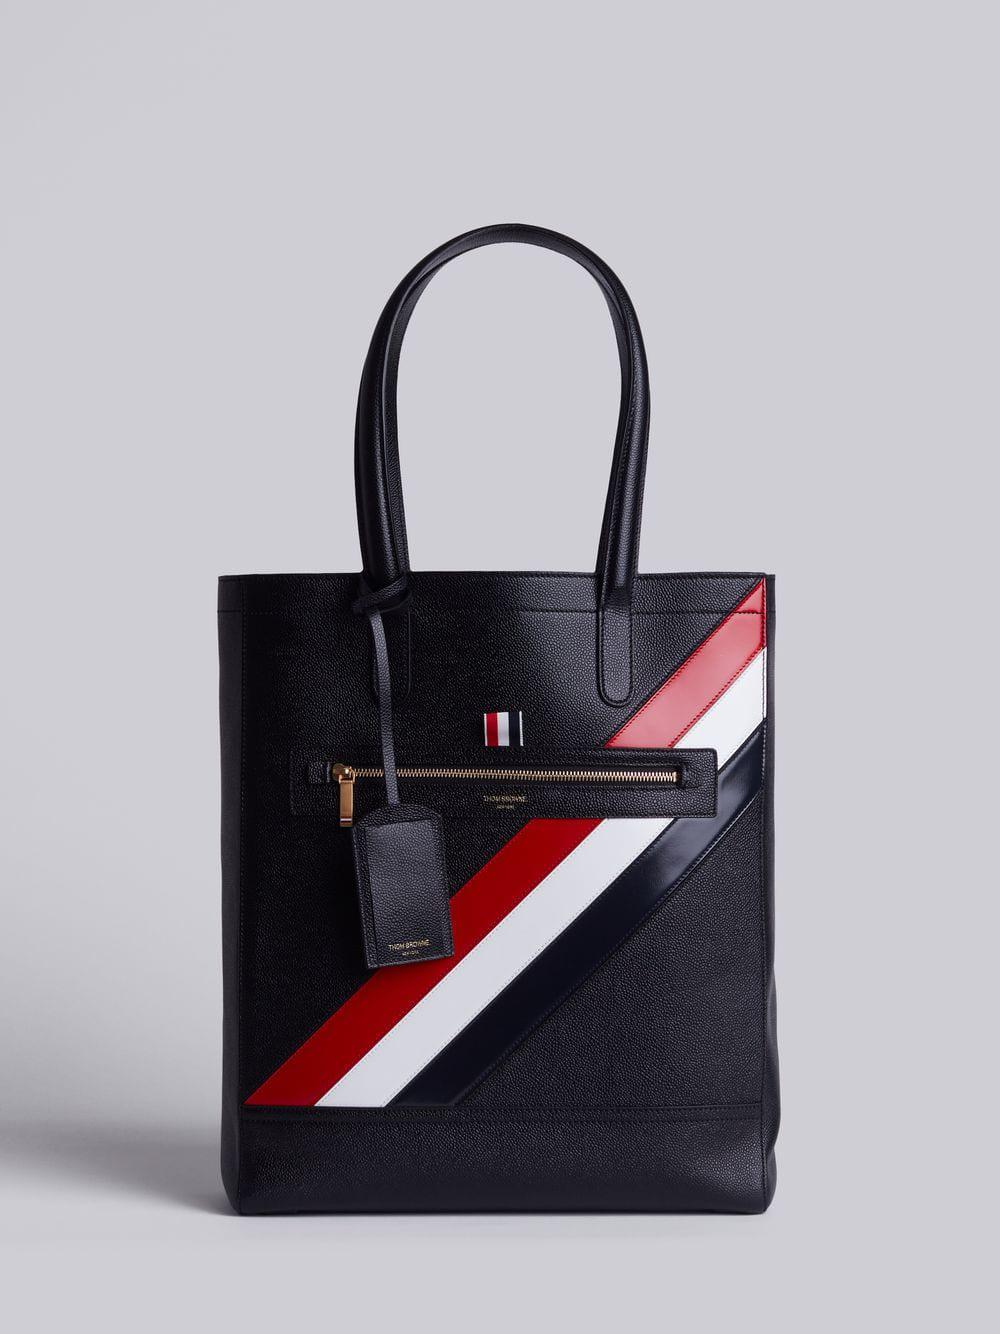 Thom Browne Tote In Black Pebble Grain Red, White And Blue Diagonal Stripe In Calf Leather